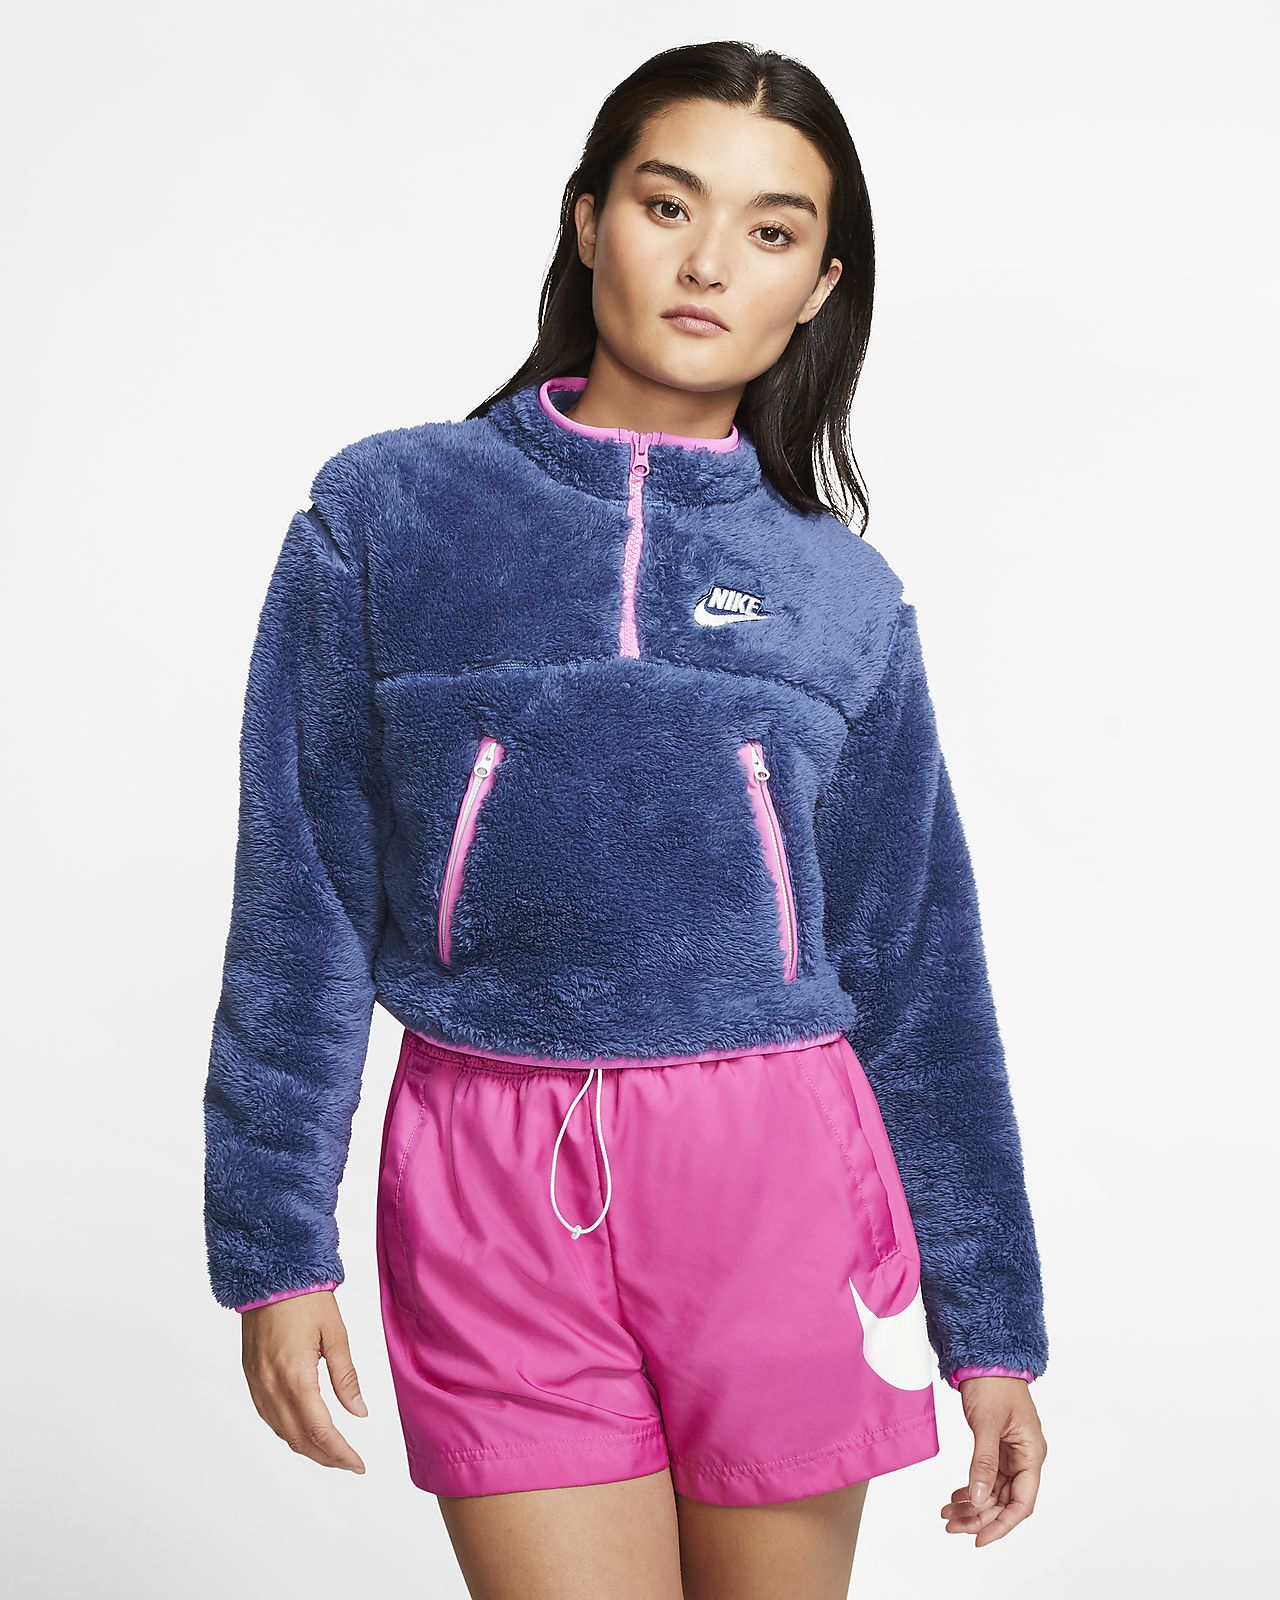 Nike Sportswear Women's 14 Zip Sherpa Fleece Crop Top